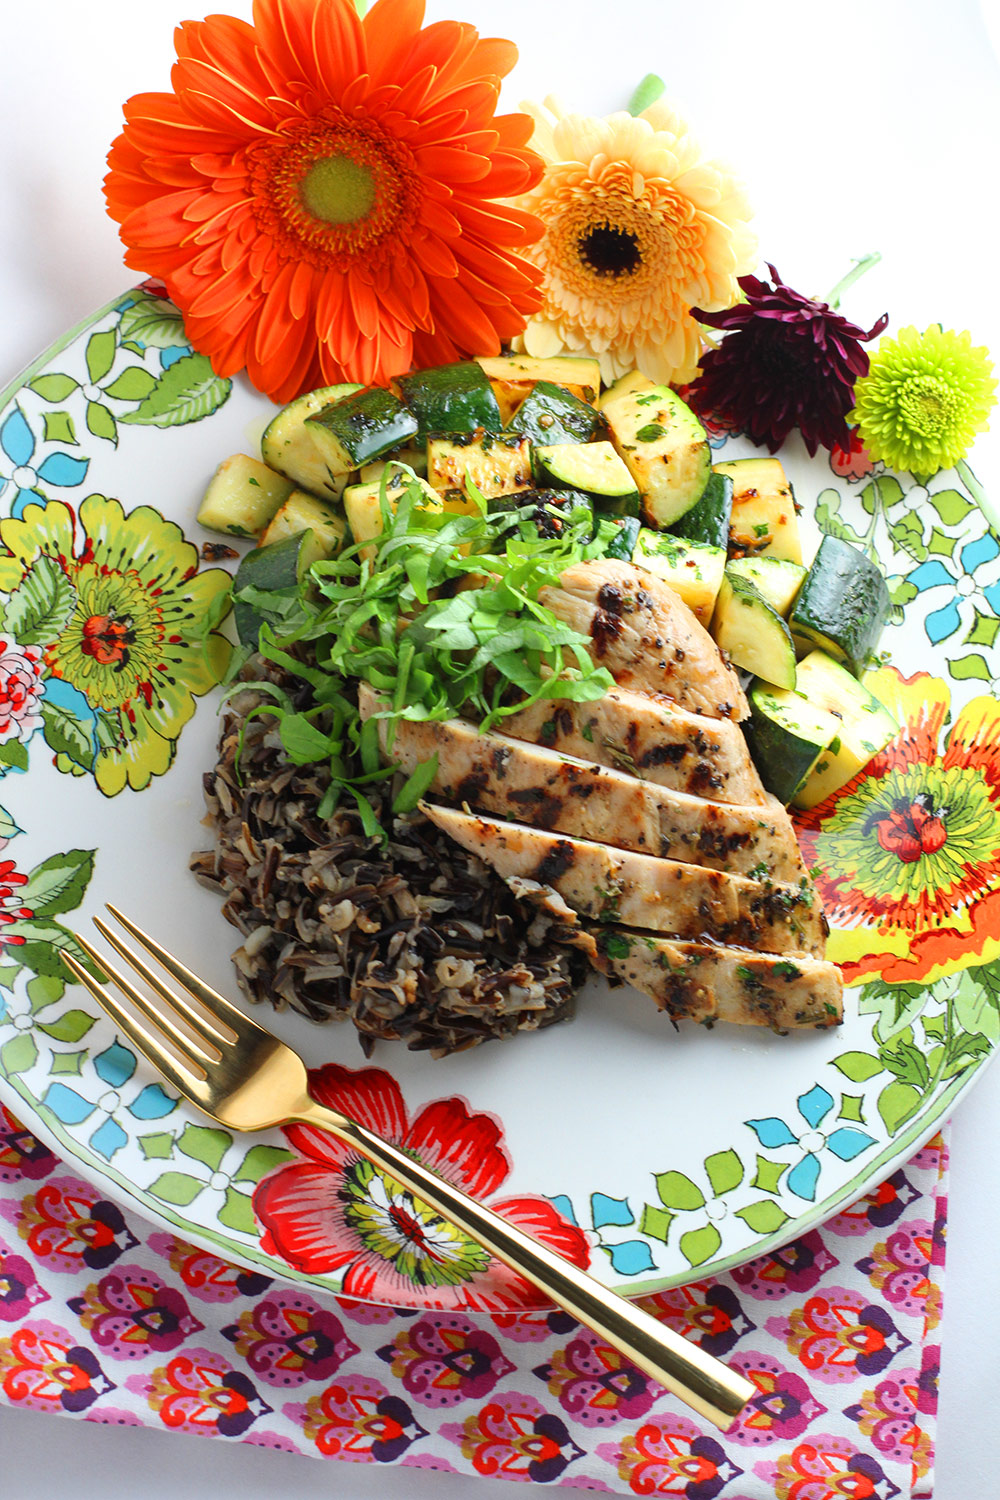 Chicken Paillard with Wild Rice